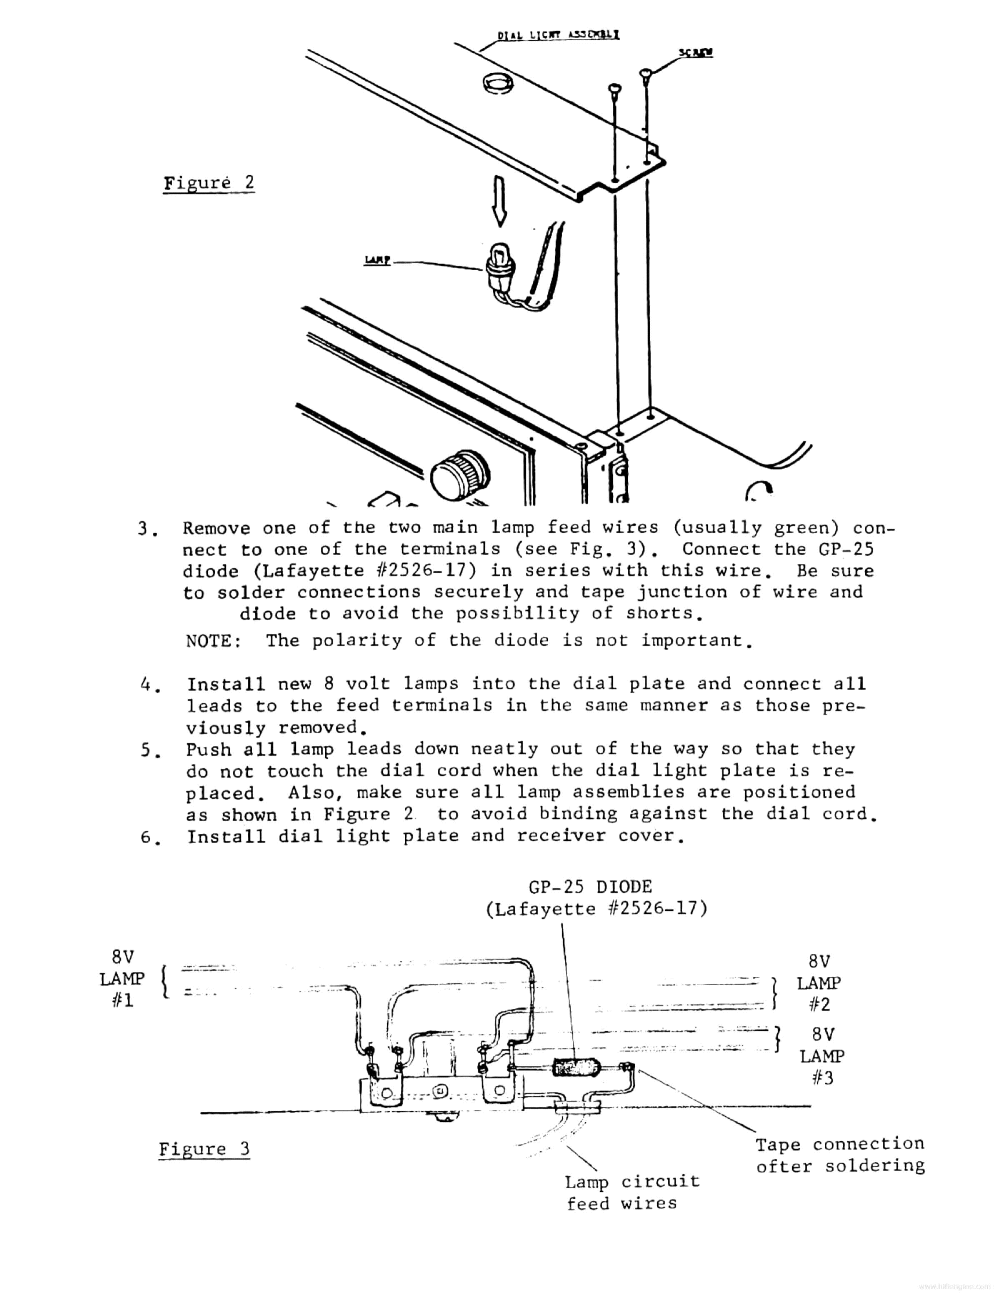 medium resolution of lafayette lr 1515a 2020a 3030a 5555a technical info service manual 2nd page